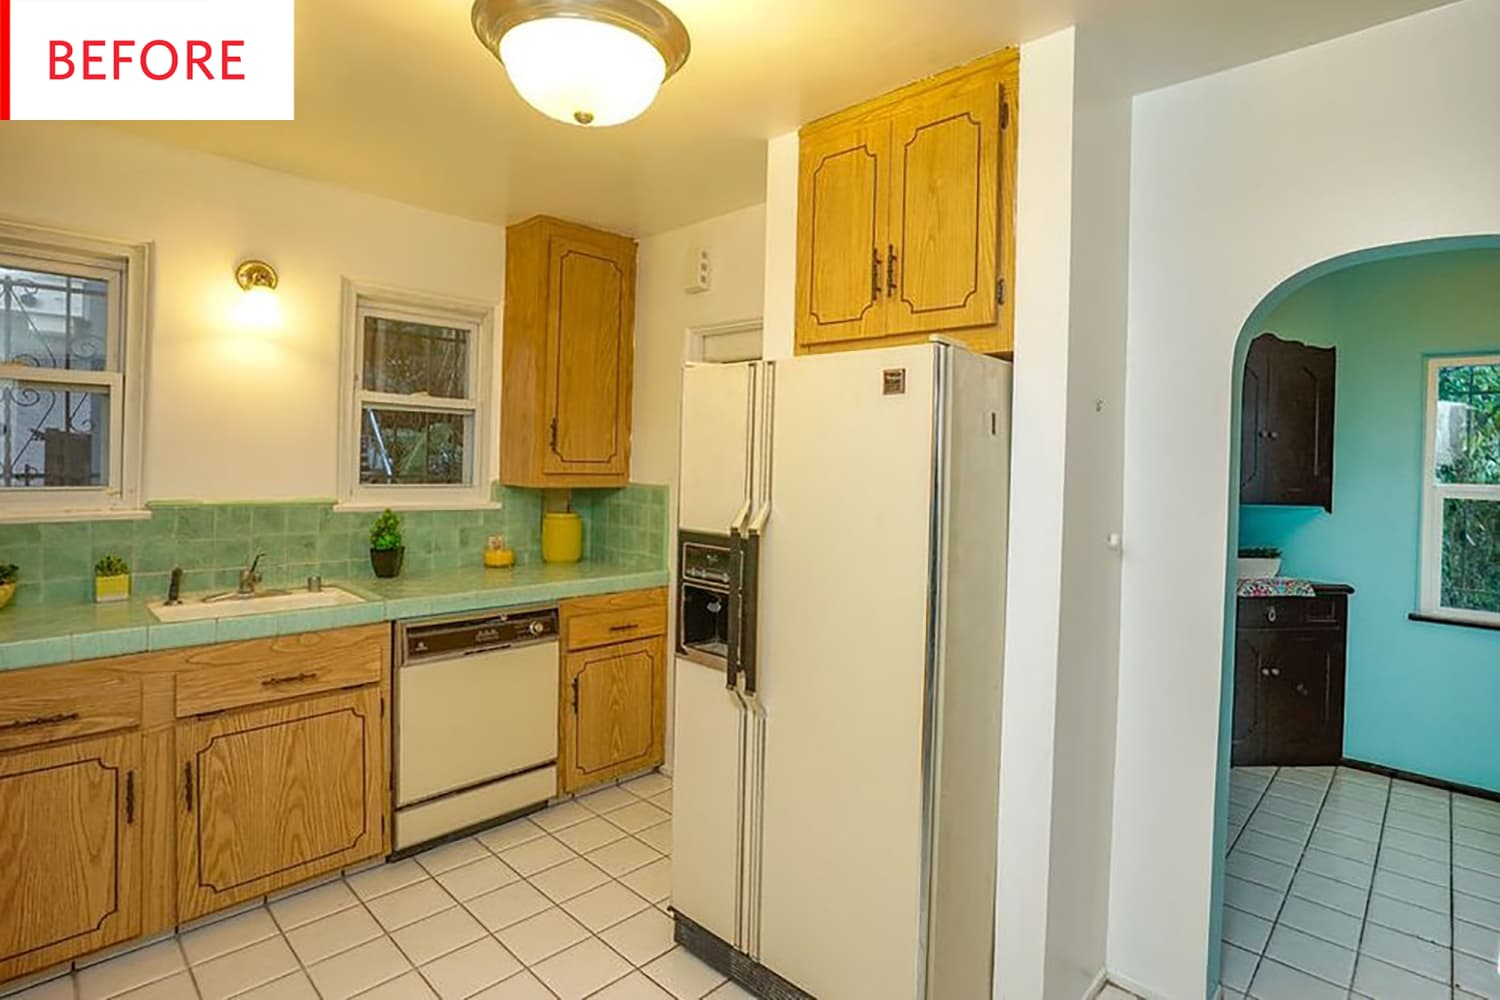 This Kitchen Remodel Wasn't Cheap, but the Results Are Incredible